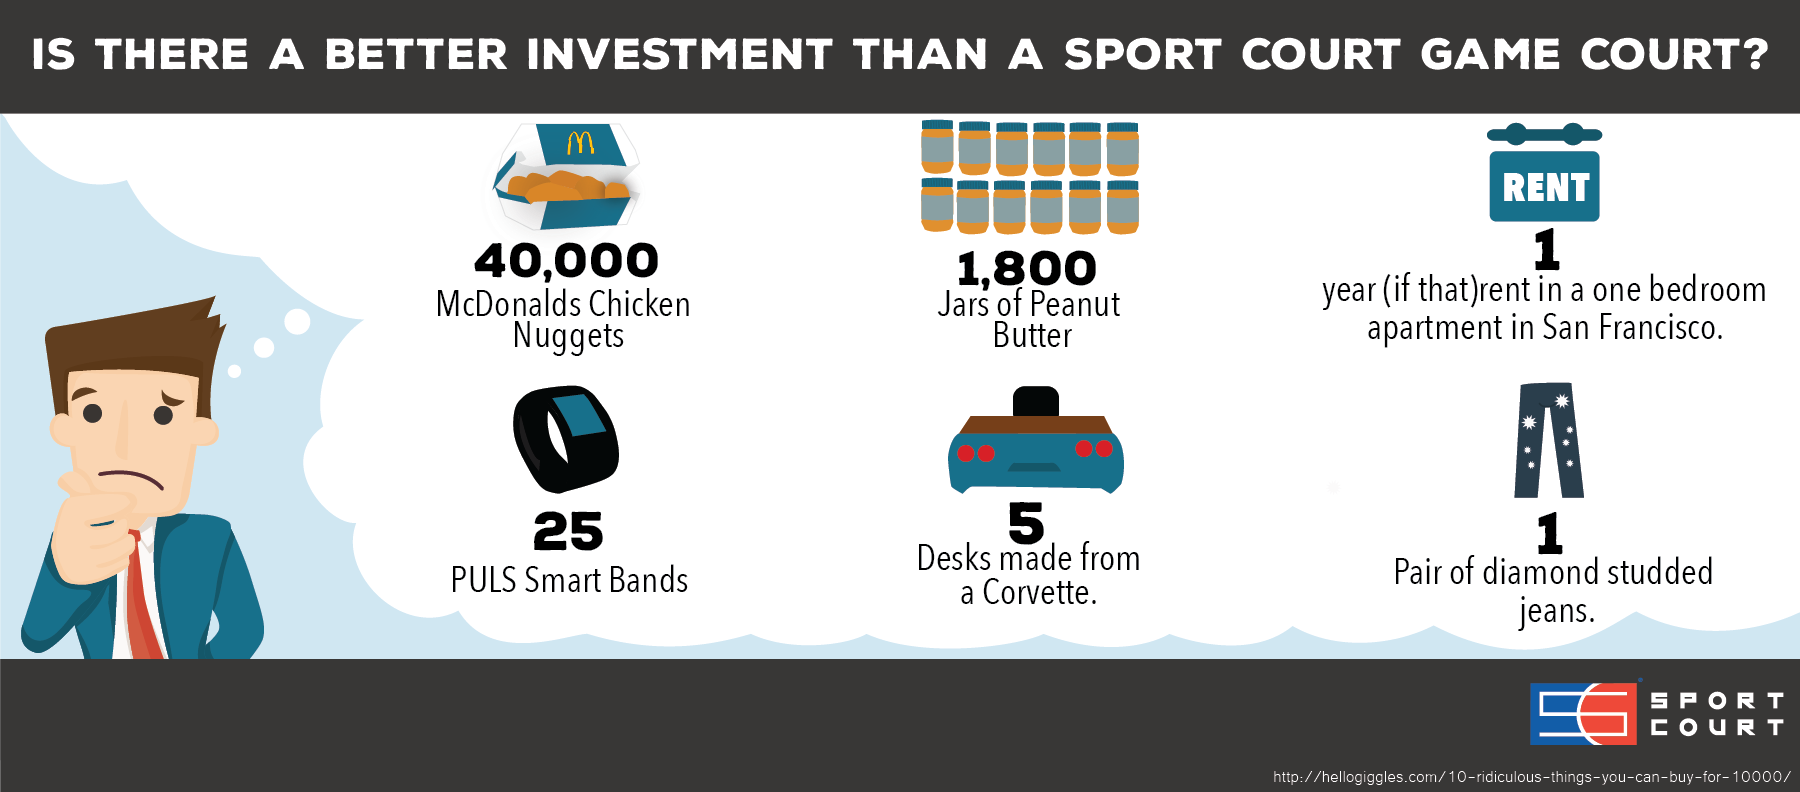 Is There a Better Investment Than a Sport Court?